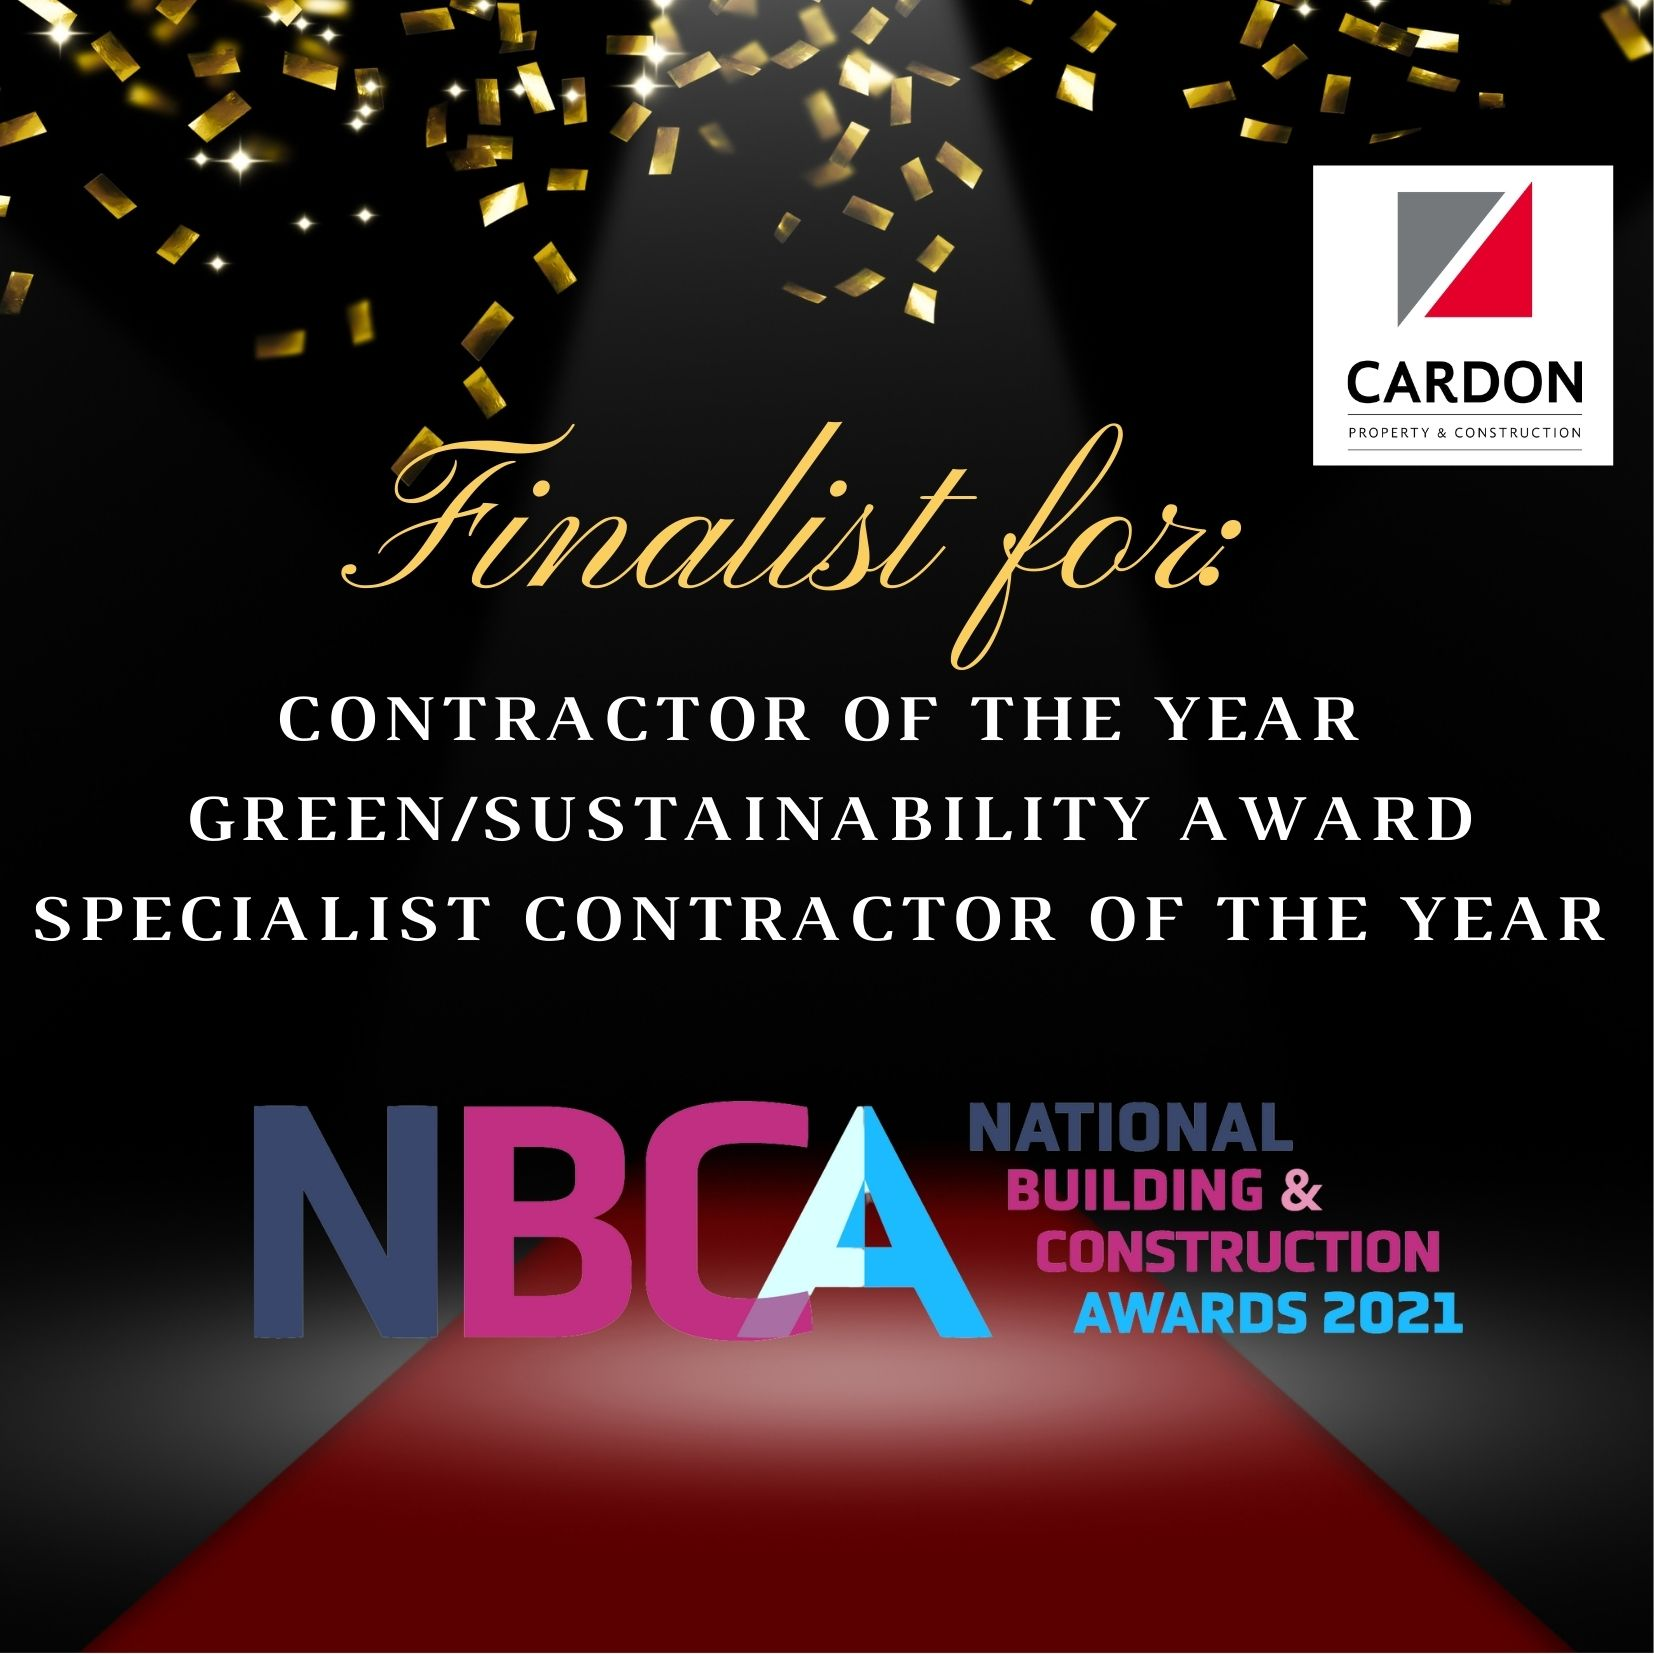 Finalists for the National Building & Construction Awards